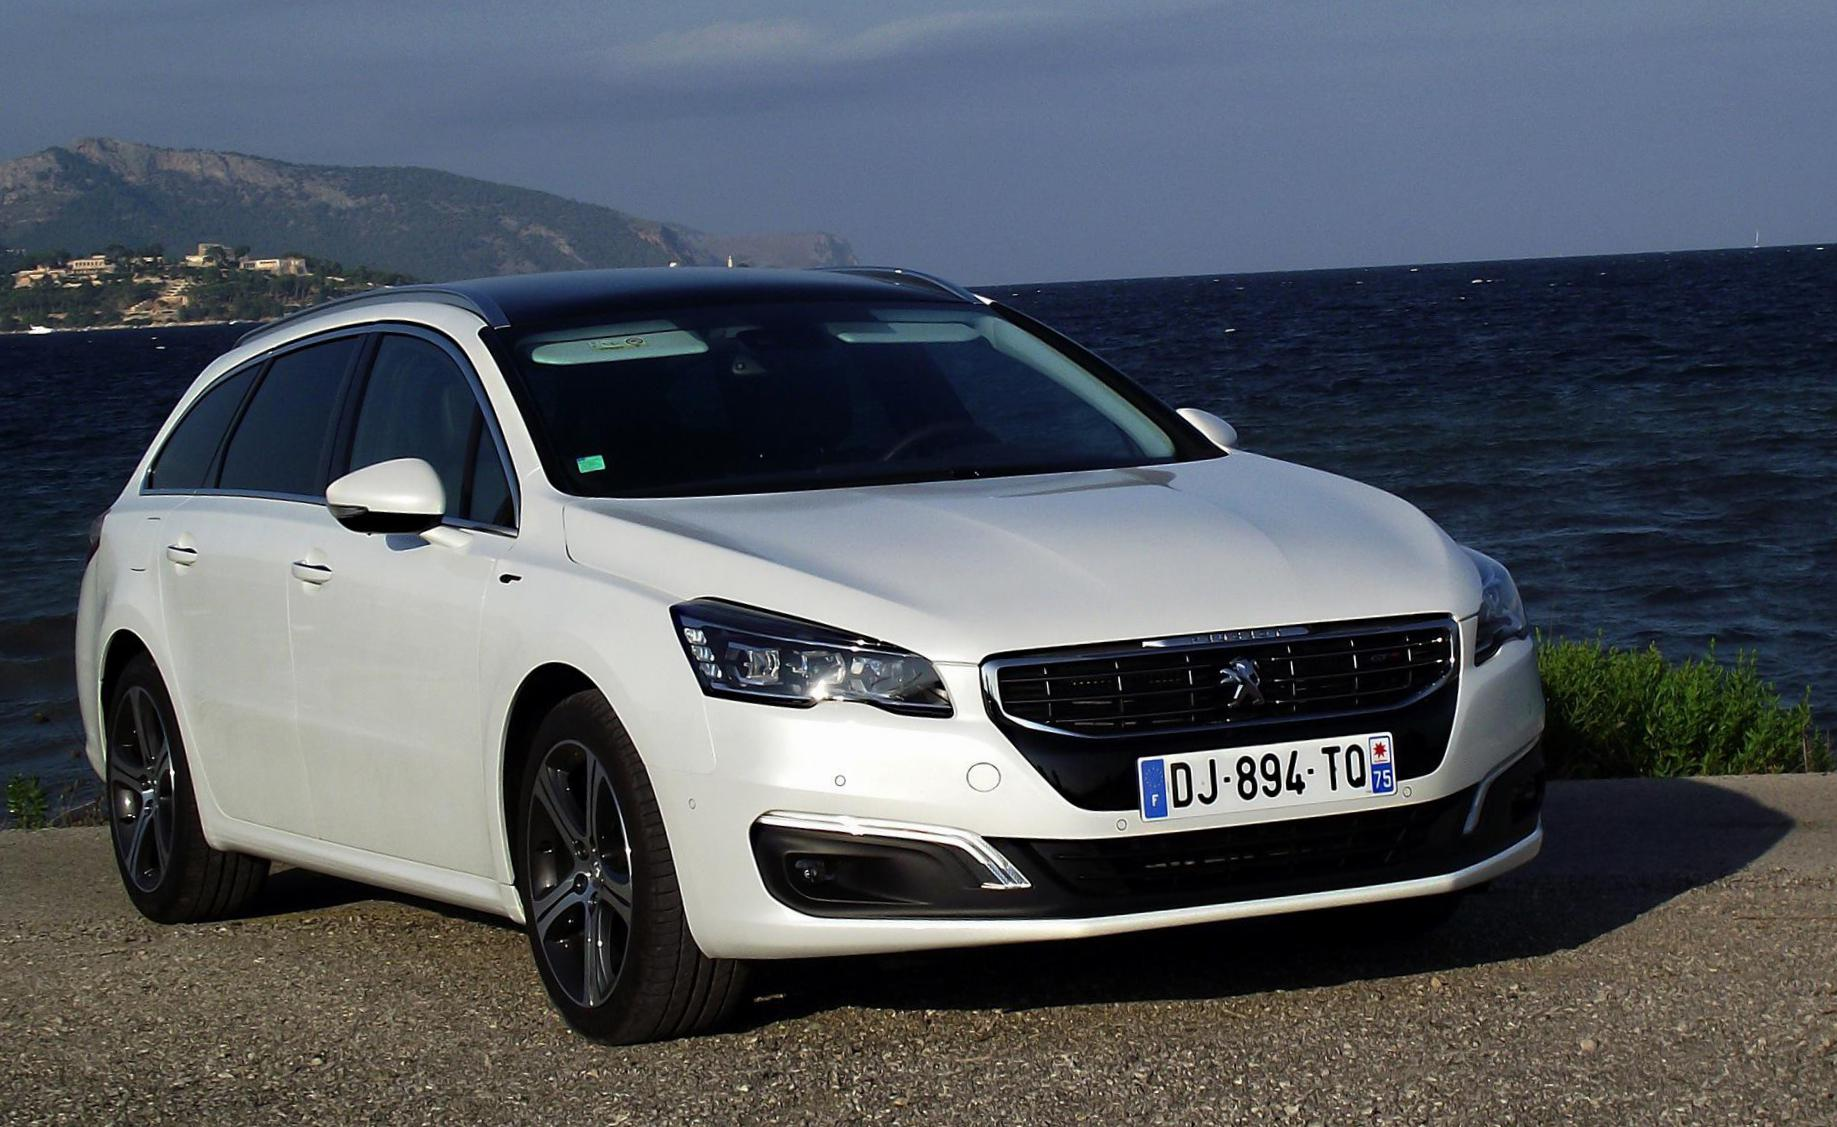 Peugeot 508 Photos And Specs Photo Peugeot 508 Tuning And 25 Perfect Photos Of Peugeot 508